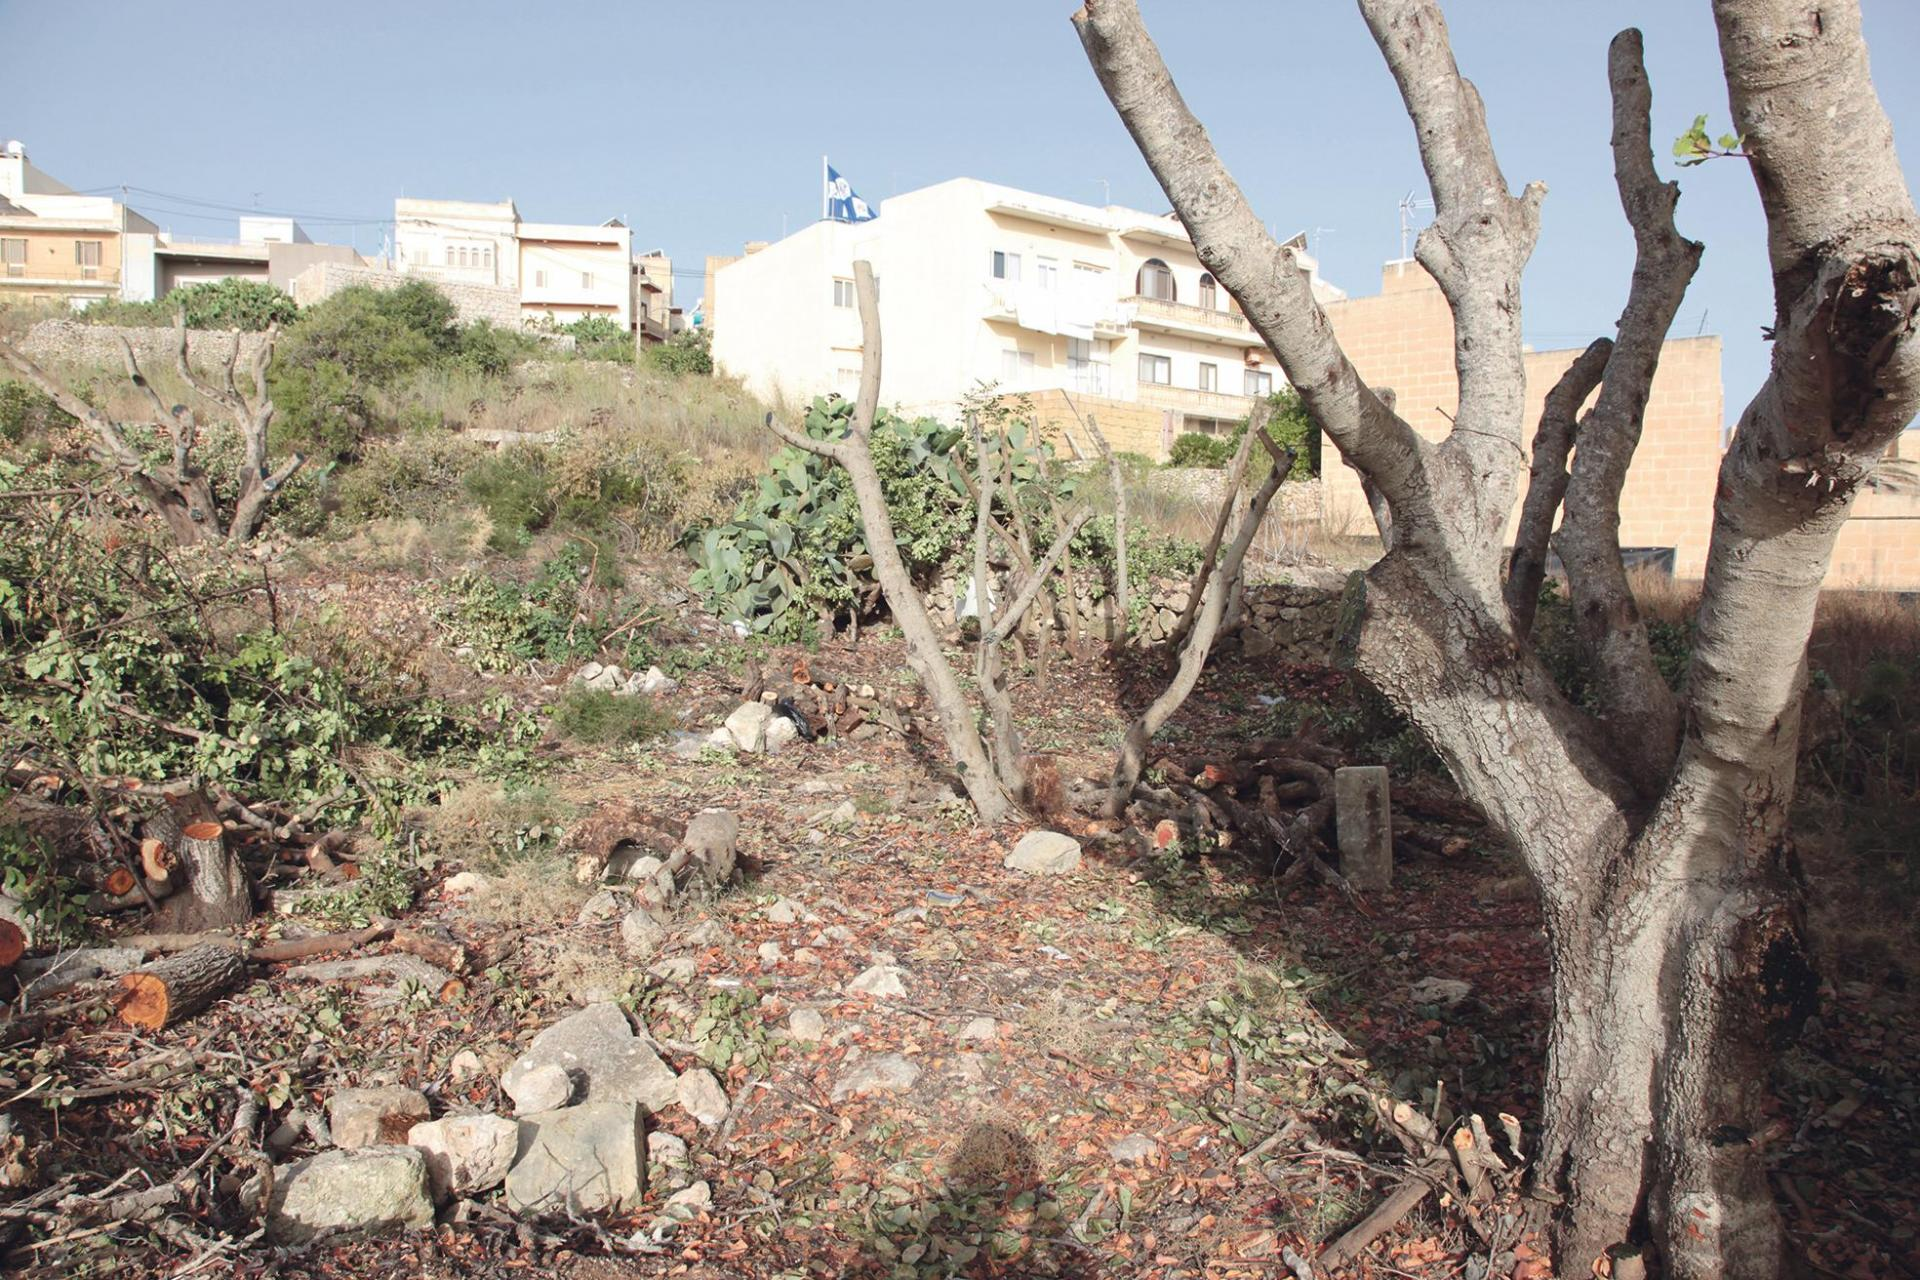 Clearance work and site preparation for a block of flats started on the Qala site last week. Photo: Victor Paul Borg